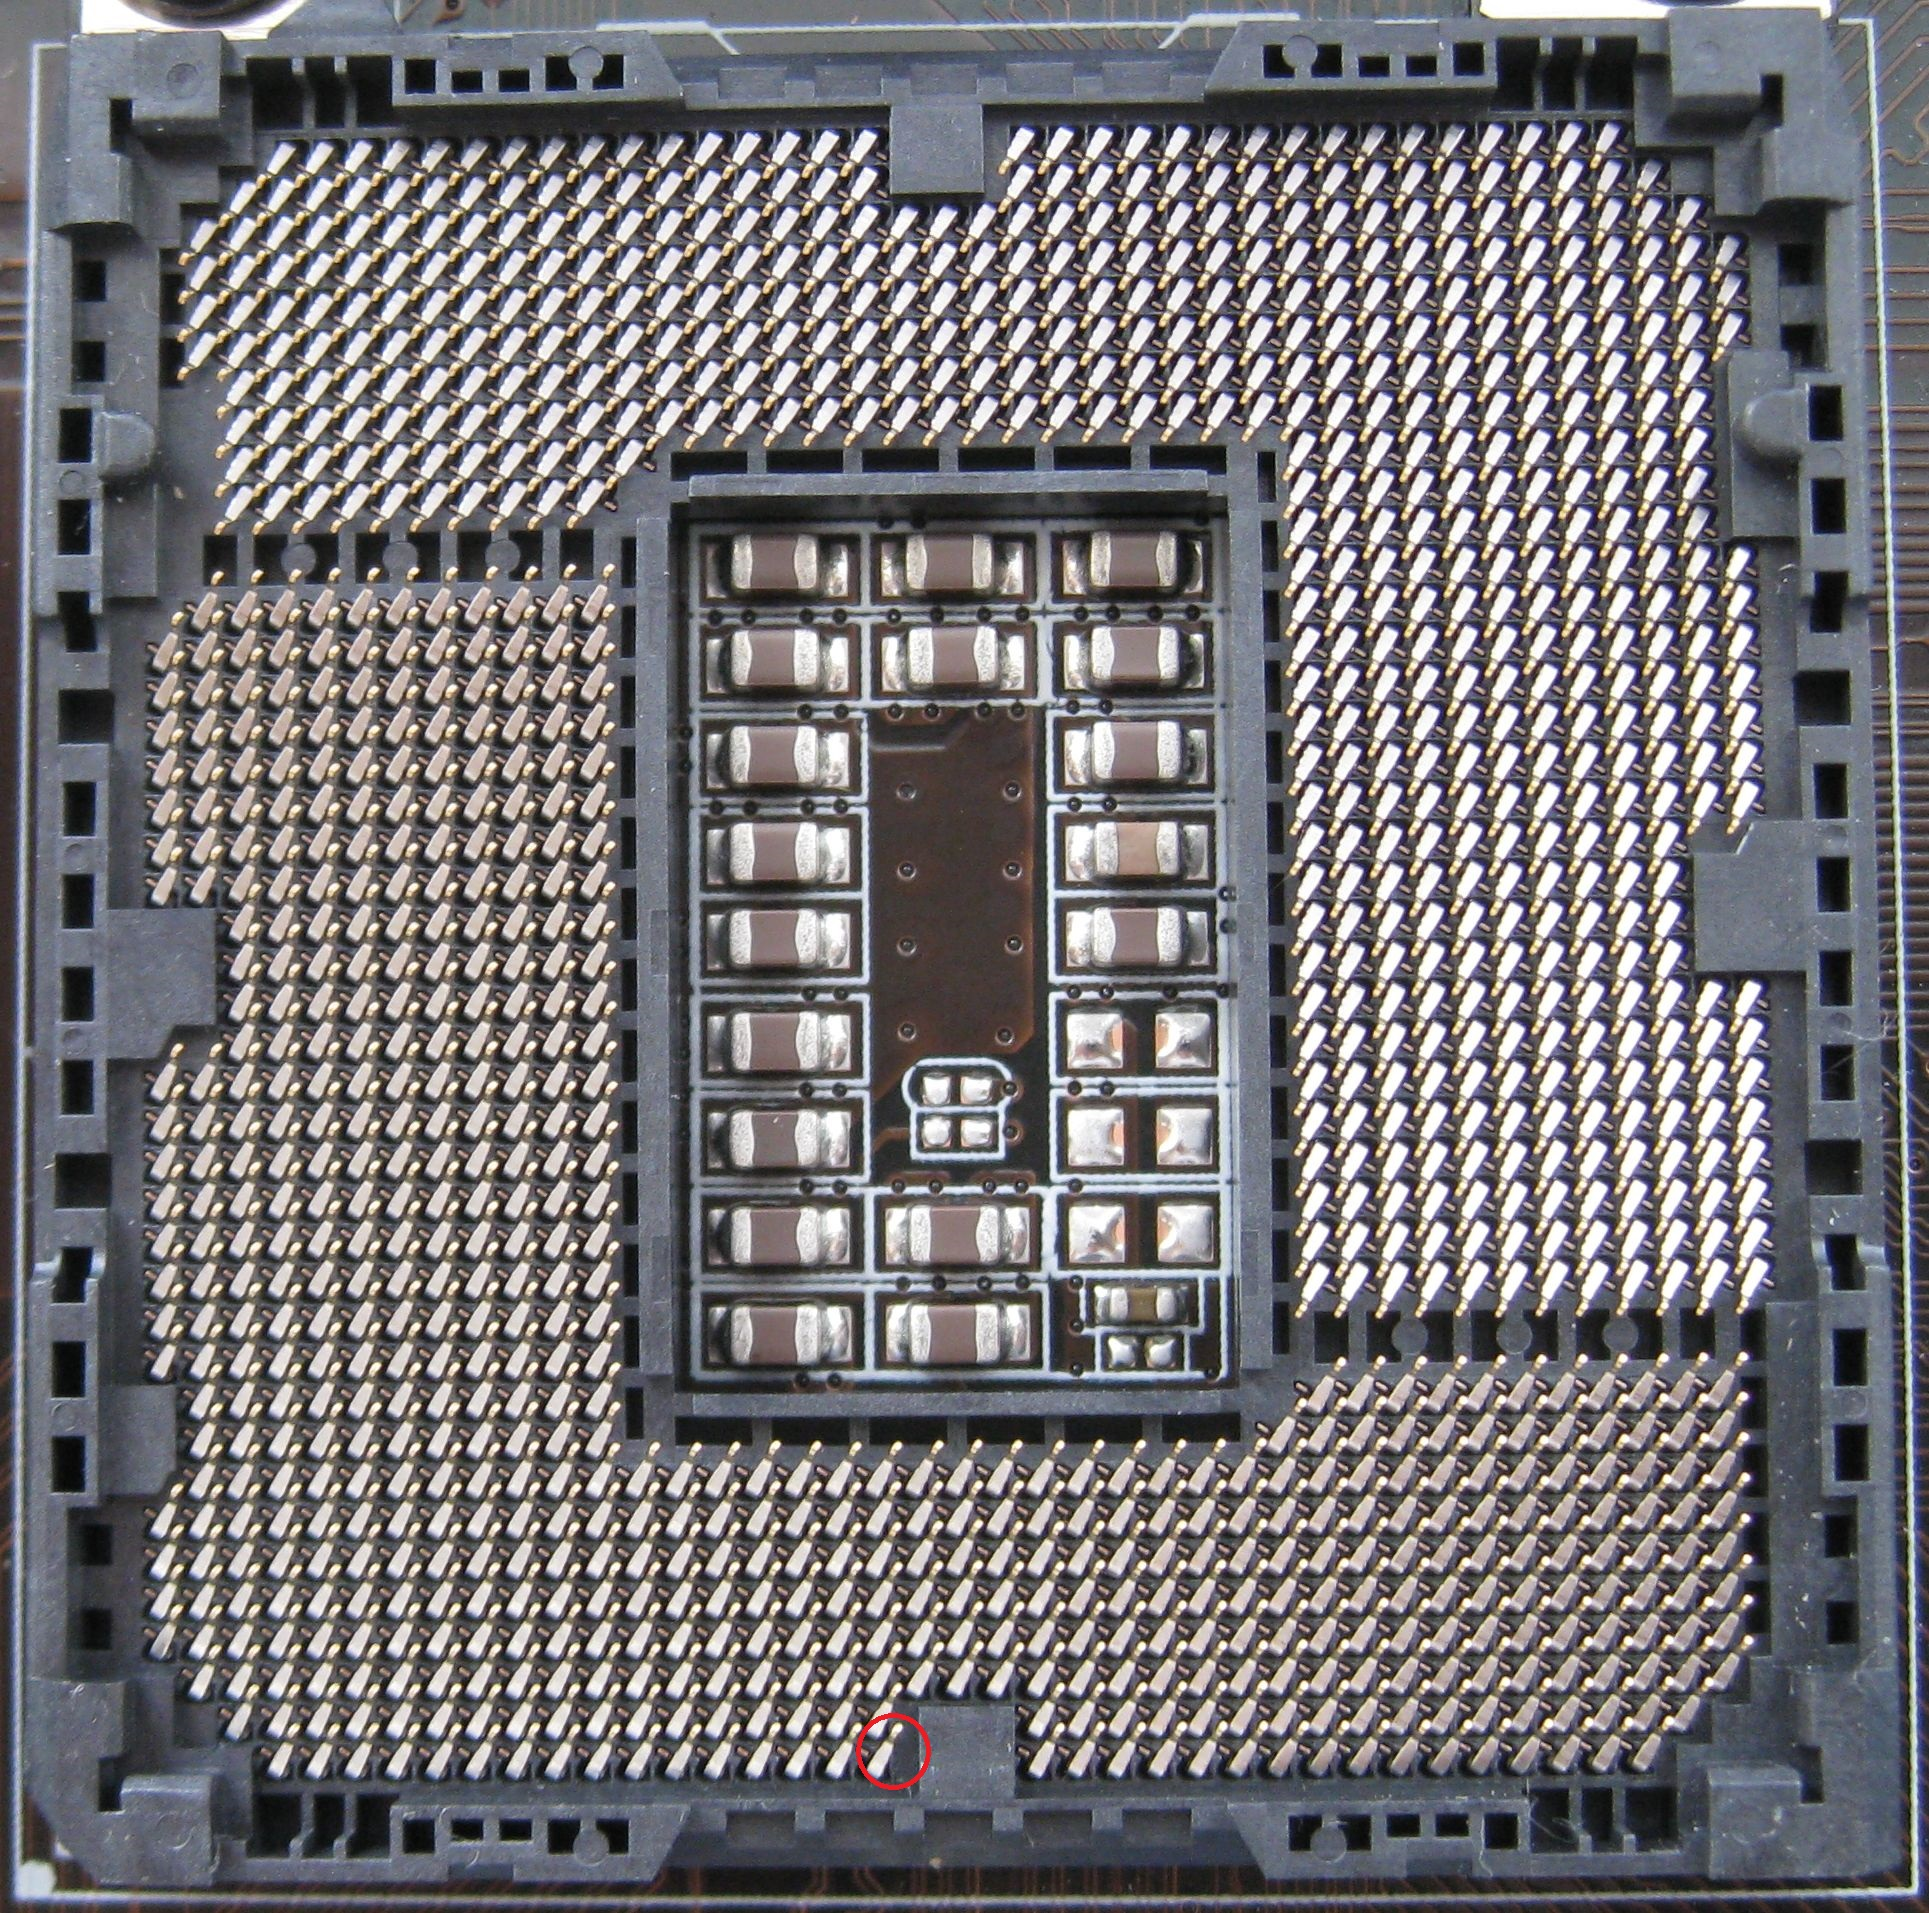 Intel_Socket_1155.jpeg